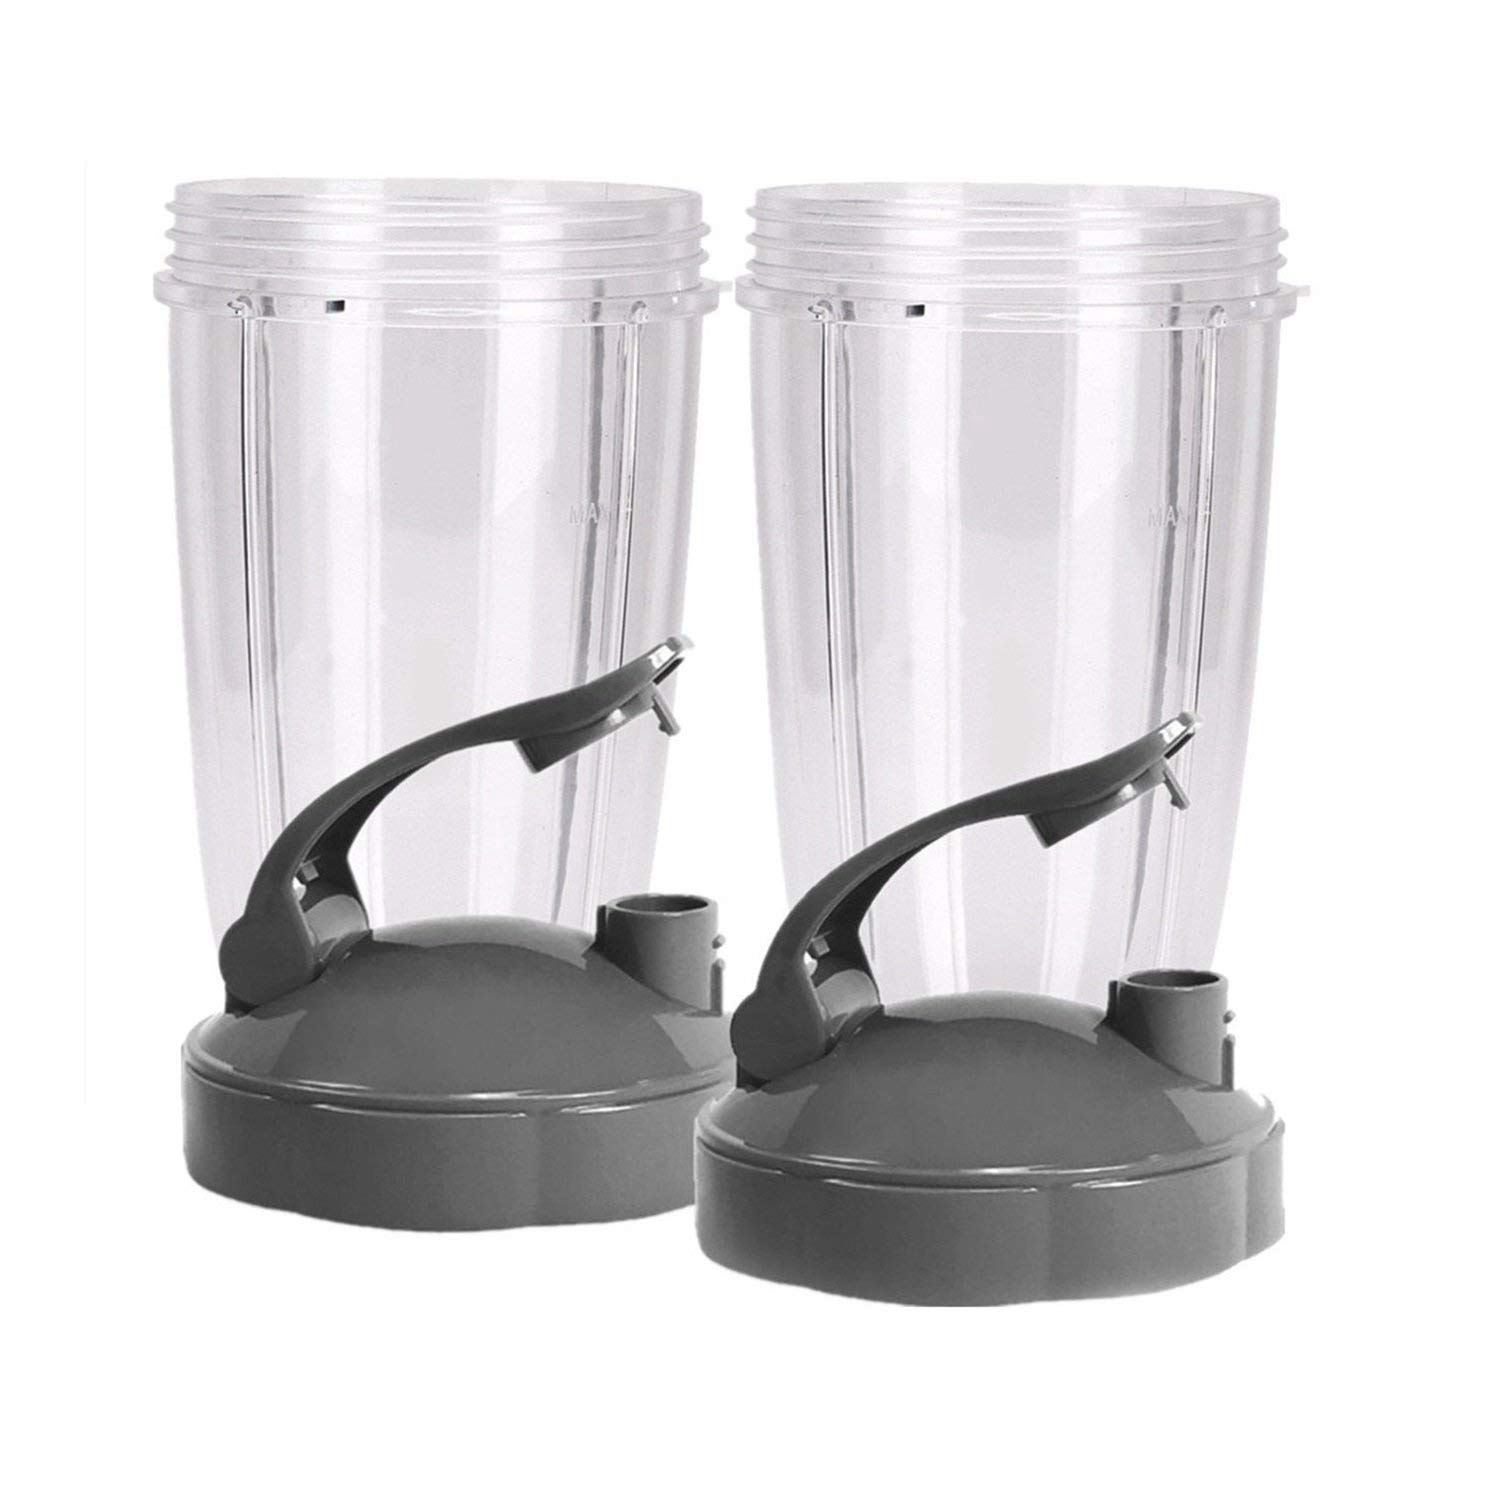 Replacement Parts & Accessories Fits Nutri 600w and Pro 900 w Blender 24 Ounce Cups with Flip Top To Go Lid (Pack of 2) Nutri|Juicer Parts| |  - title=